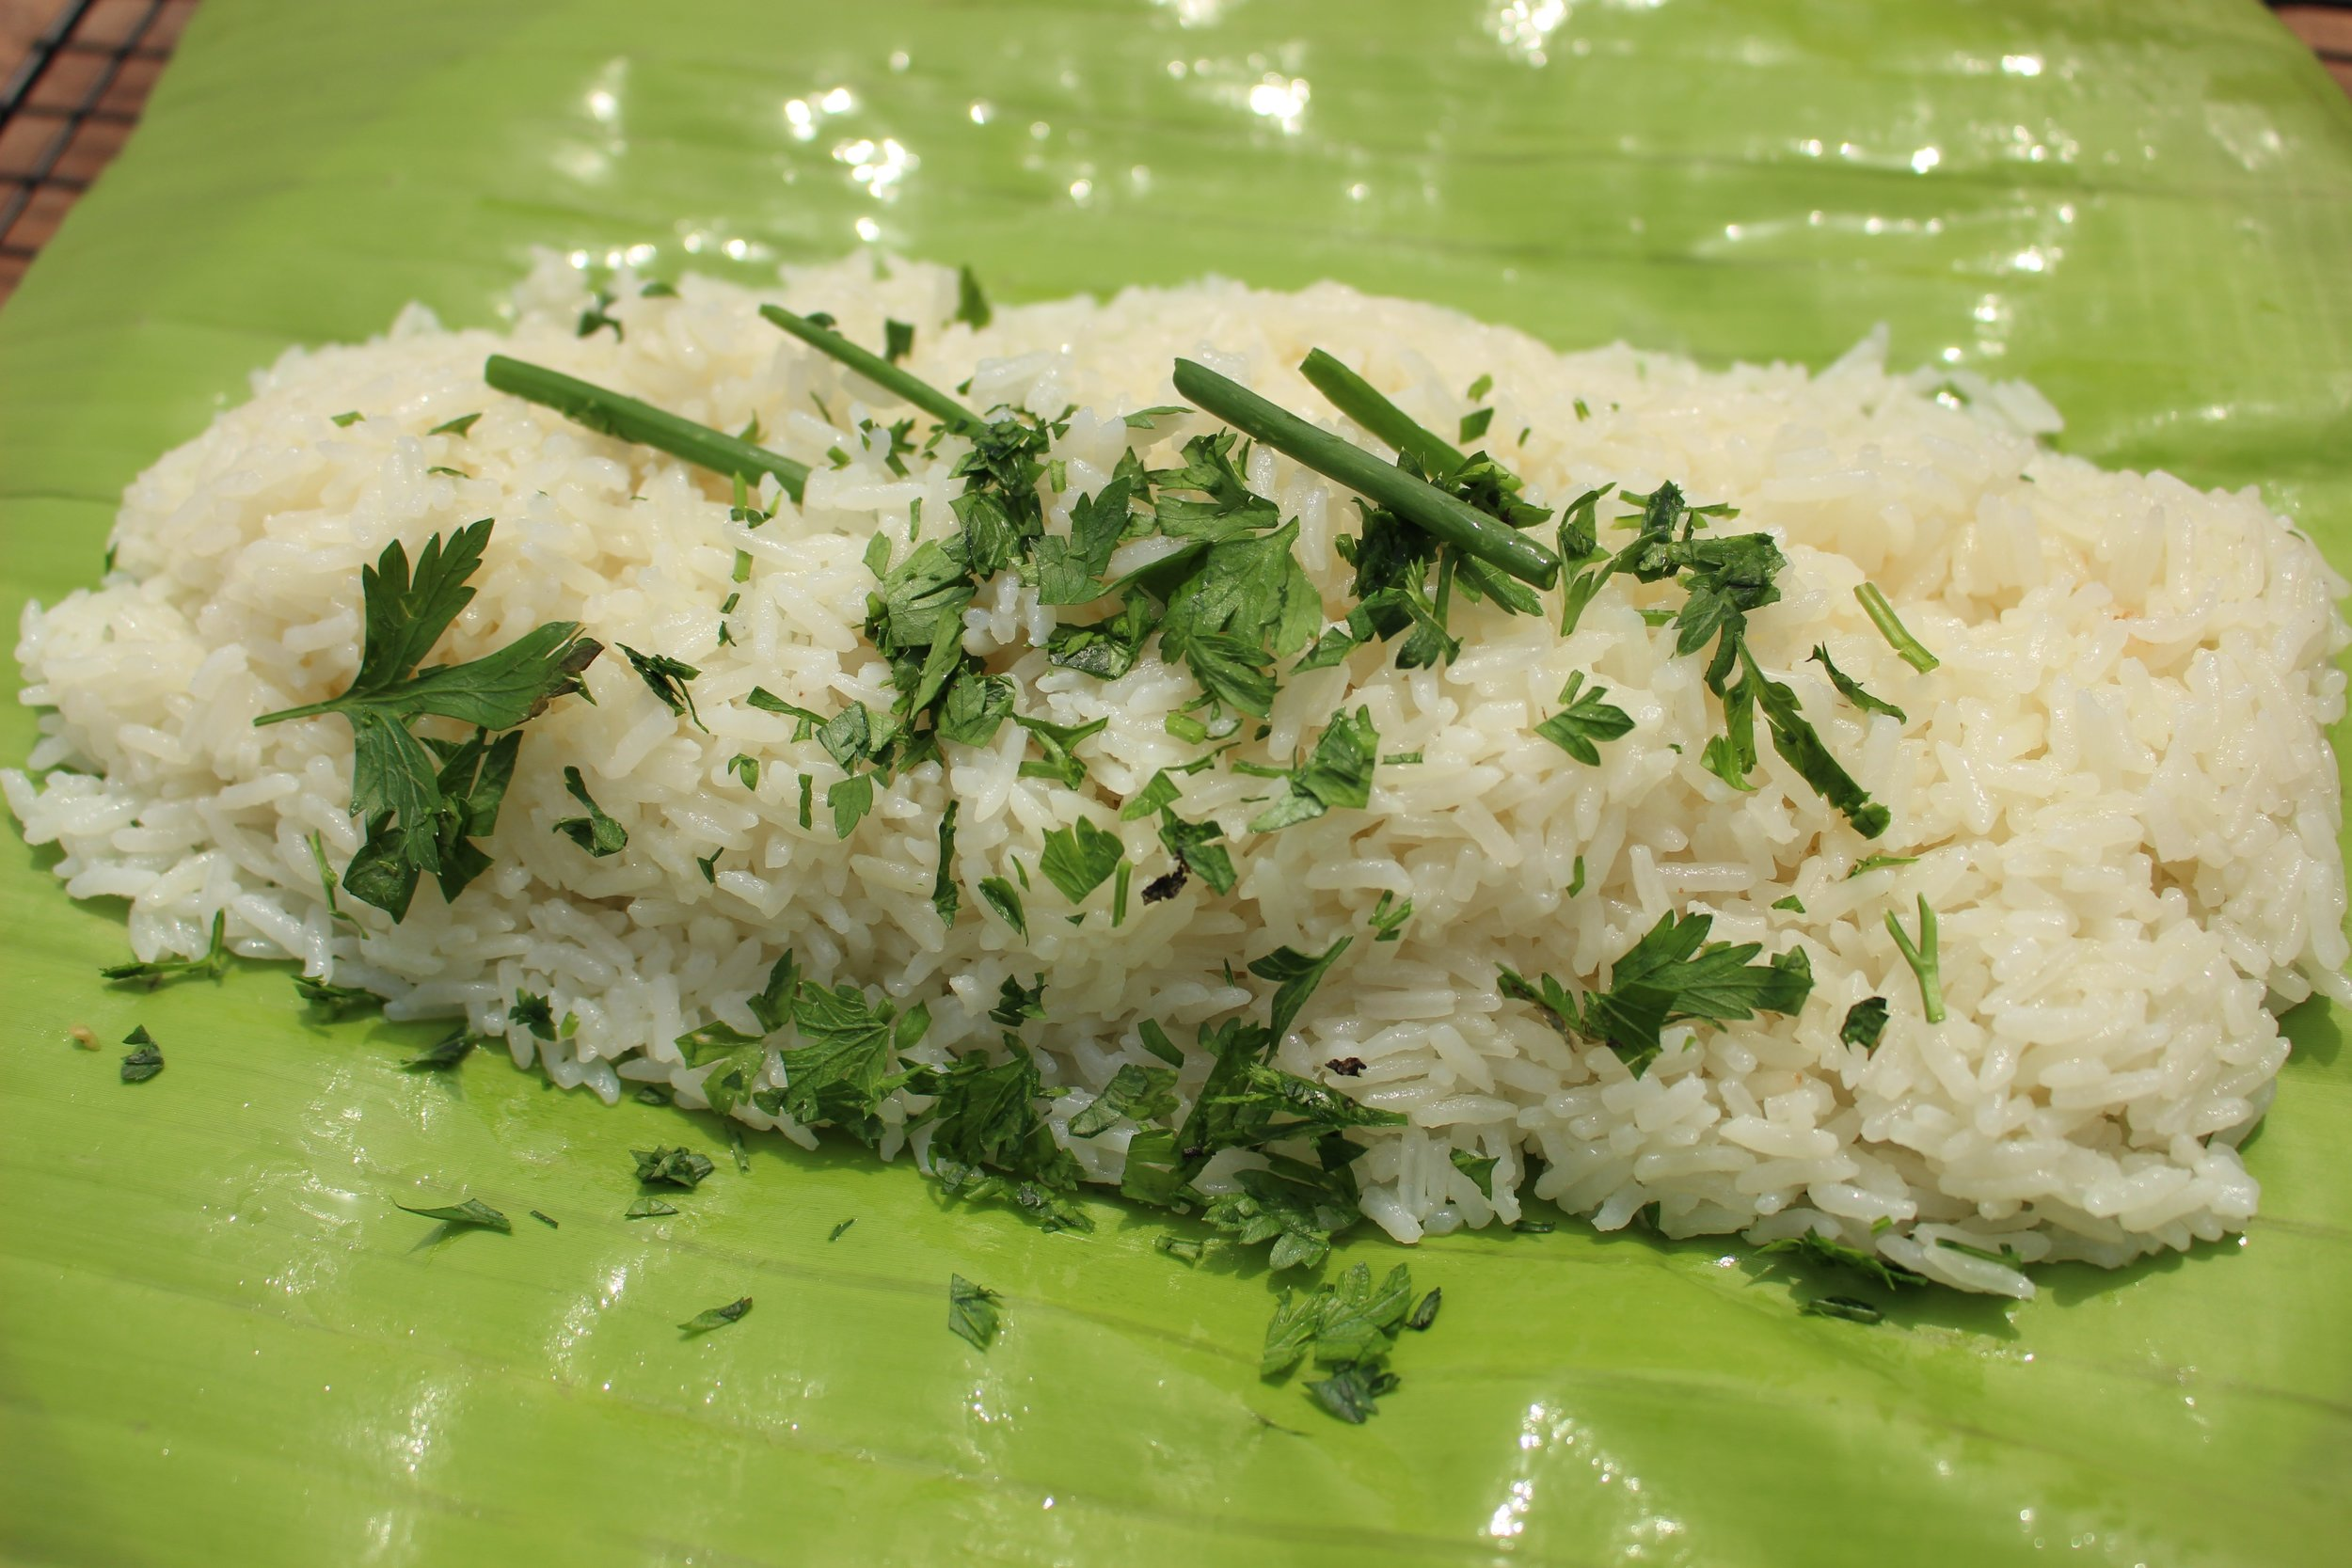 coconut rice with parsley garnish